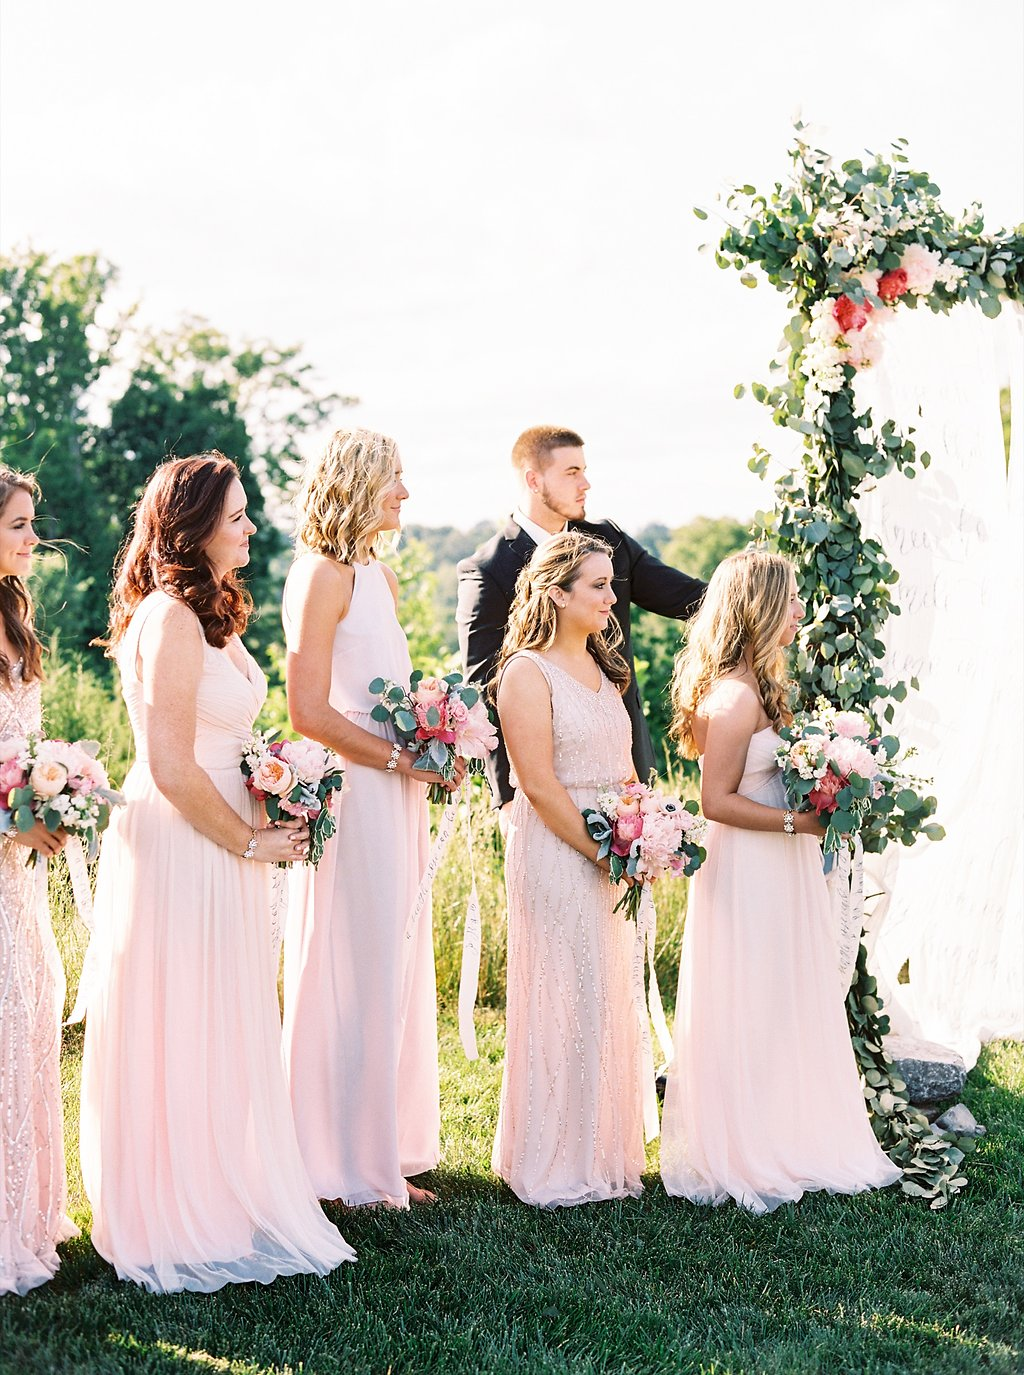 Blush Bridesmaids at an Outdoor Wedding Ceremony | Blush and Navy Wedding with Fuchsia, French Blue and Gold Accents | Simply Jessica Marie's Southern Wedding | Photo by Perry Vaile Photography